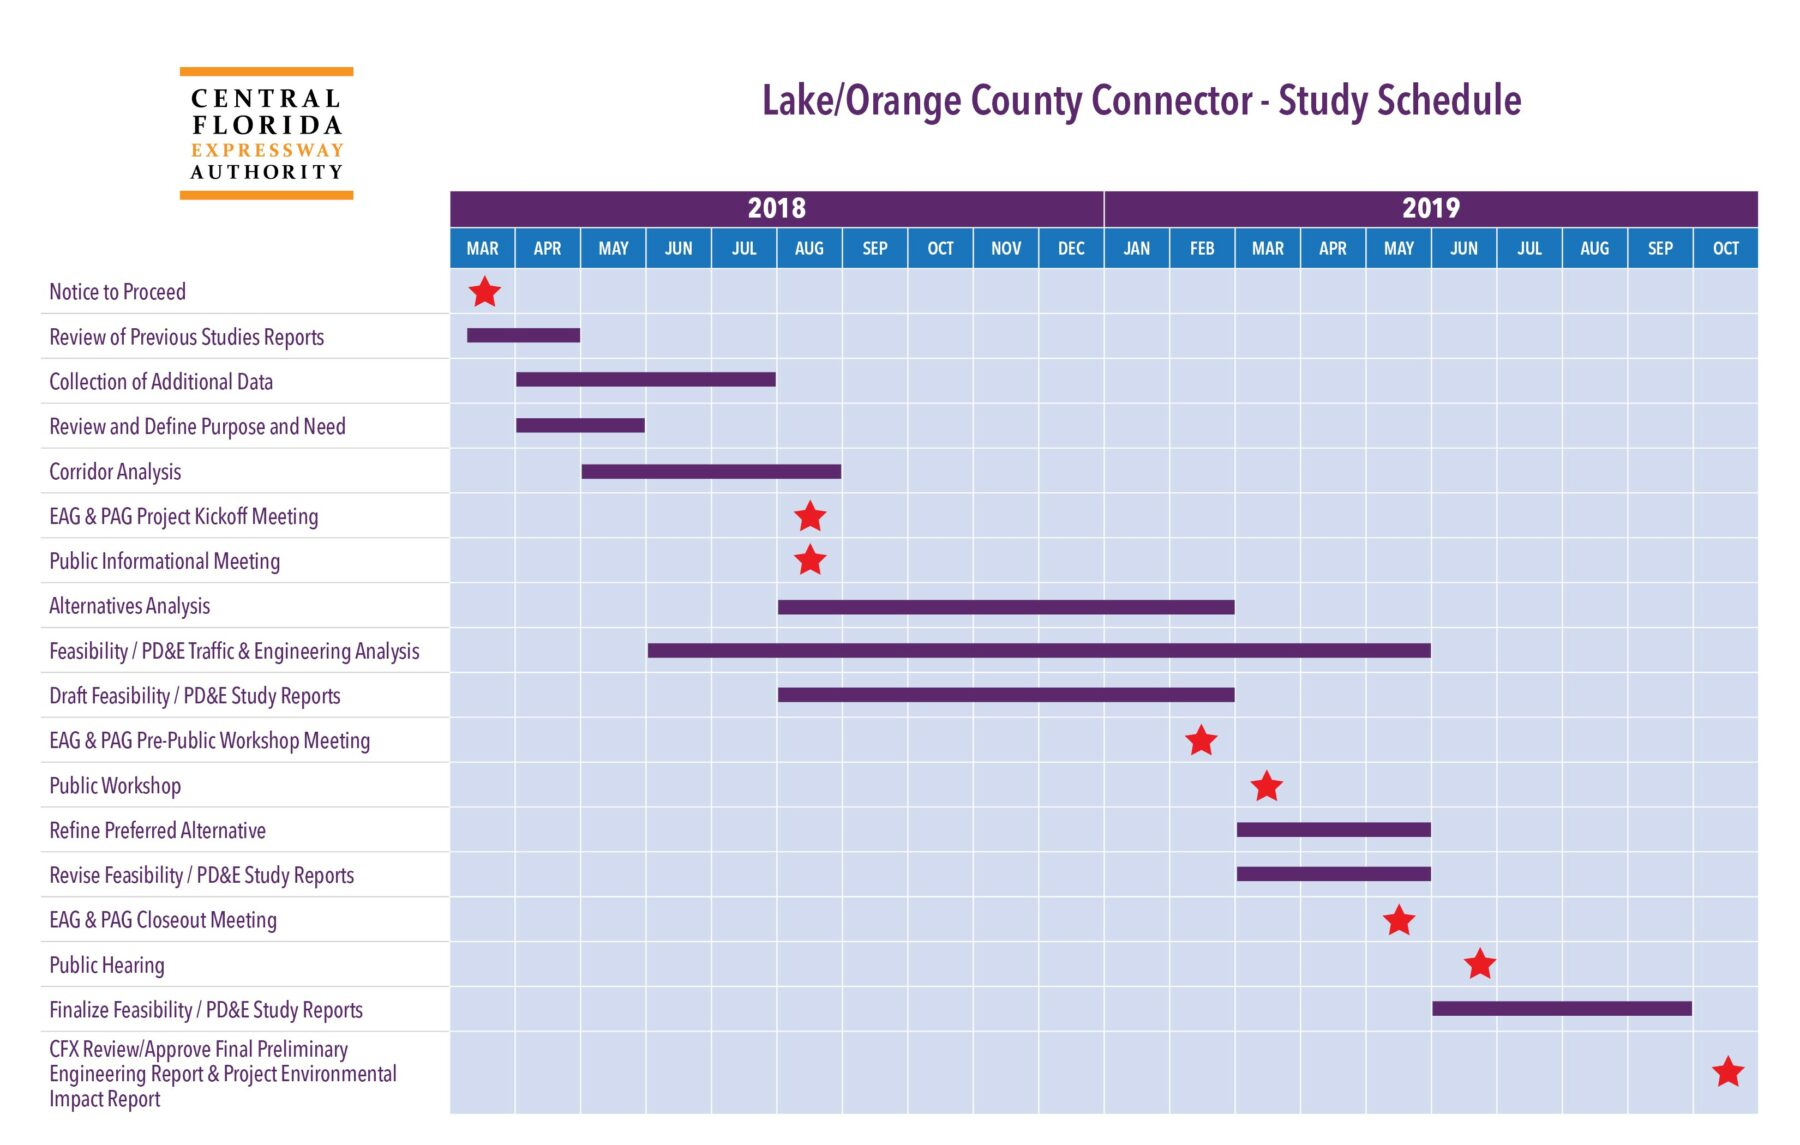 Lake/Orange County Connector study schedule September 2019